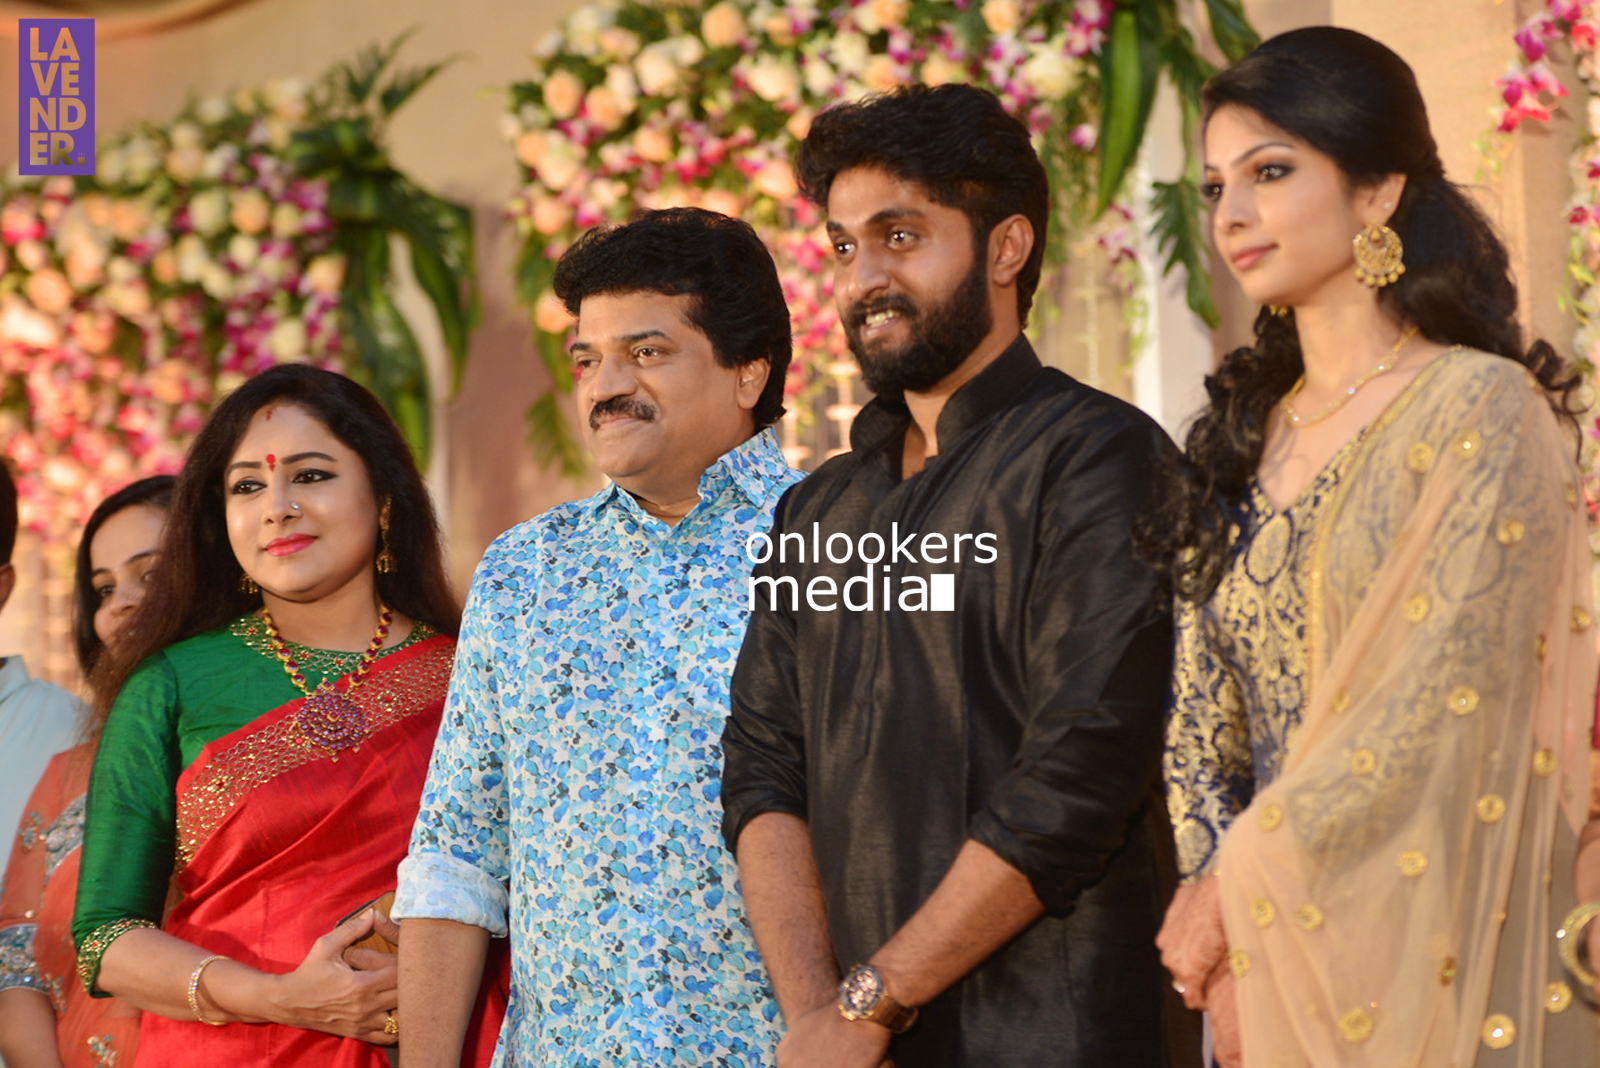 http://onlookersmedia.in/wp-content/uploads/2017/04/Dhyan-Sreenivasan-Wedding-Reception-Stills-Photo-43.jpg